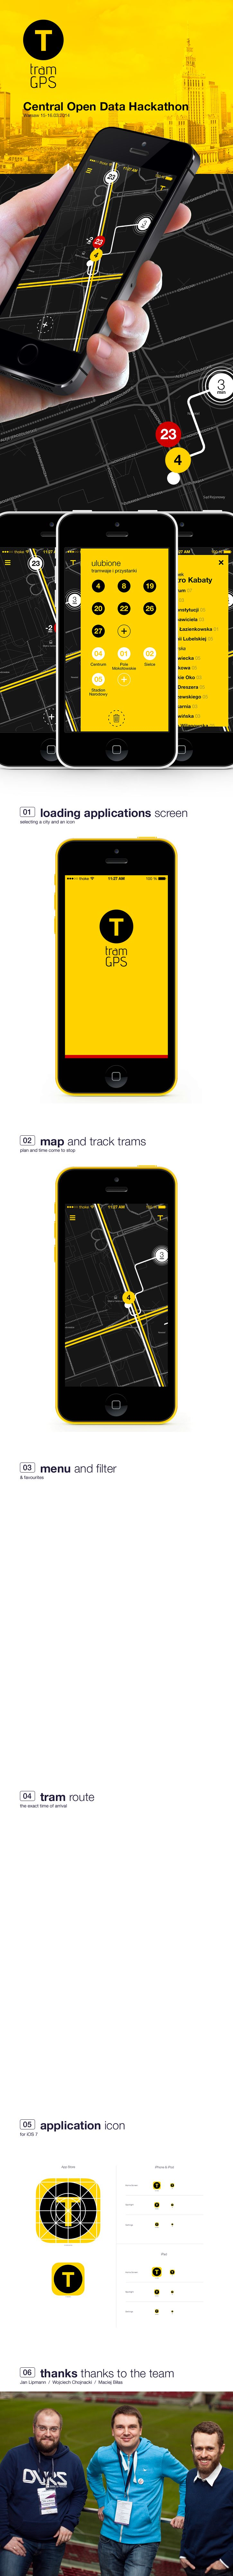 more: https://www.behance.net/gallery/tram-gps-app-hackaton/15341579